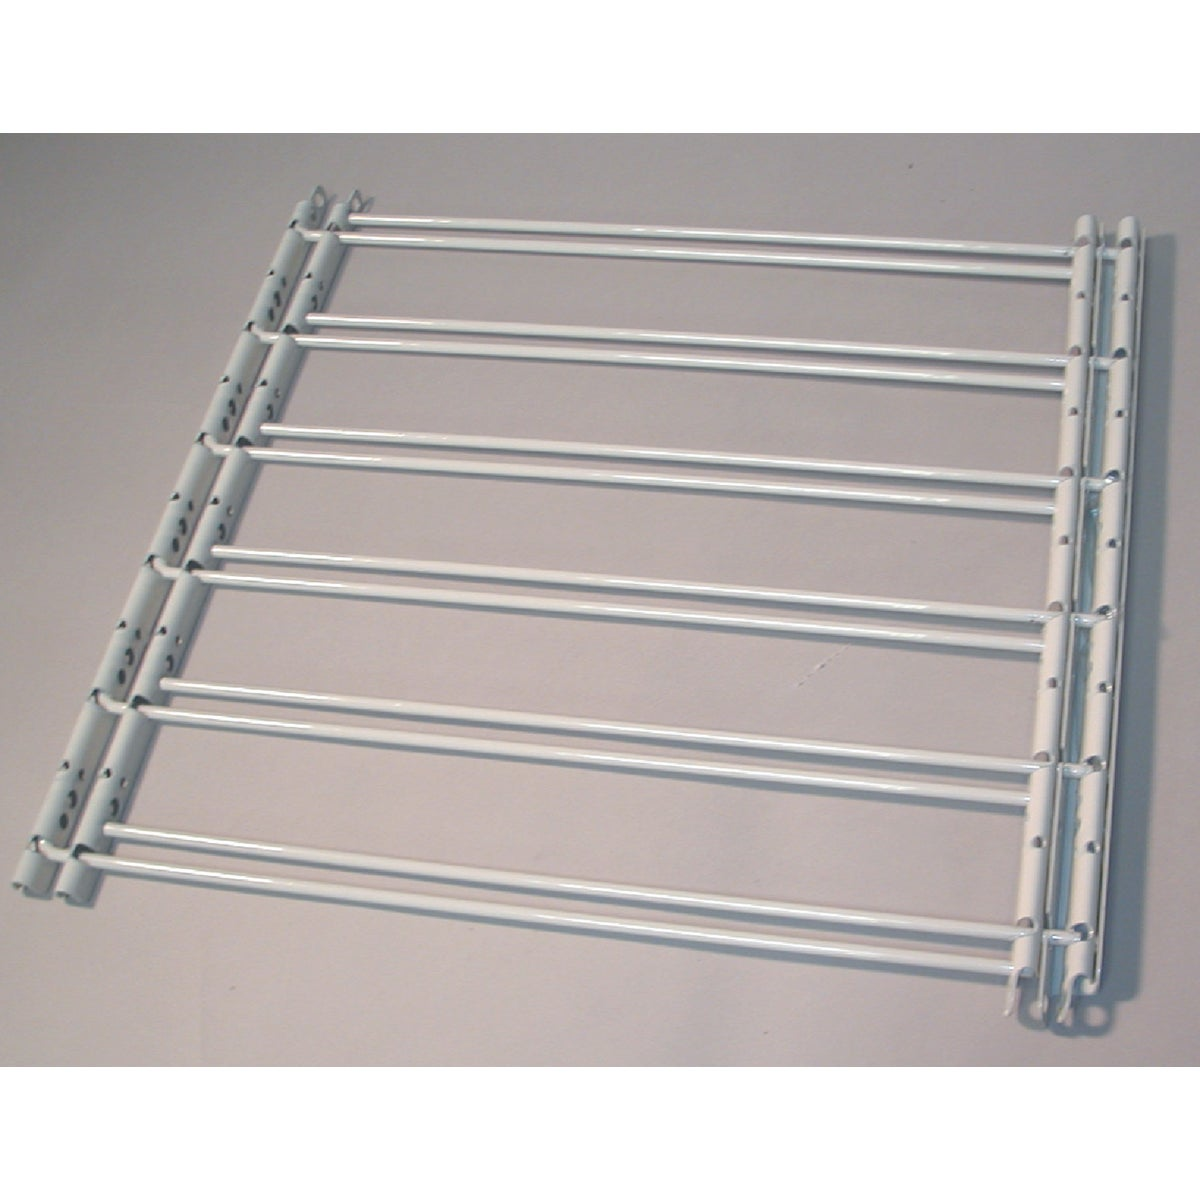 6-BAR WINDOW GUARD - 1136 by Knape & Vogt Mfg Co